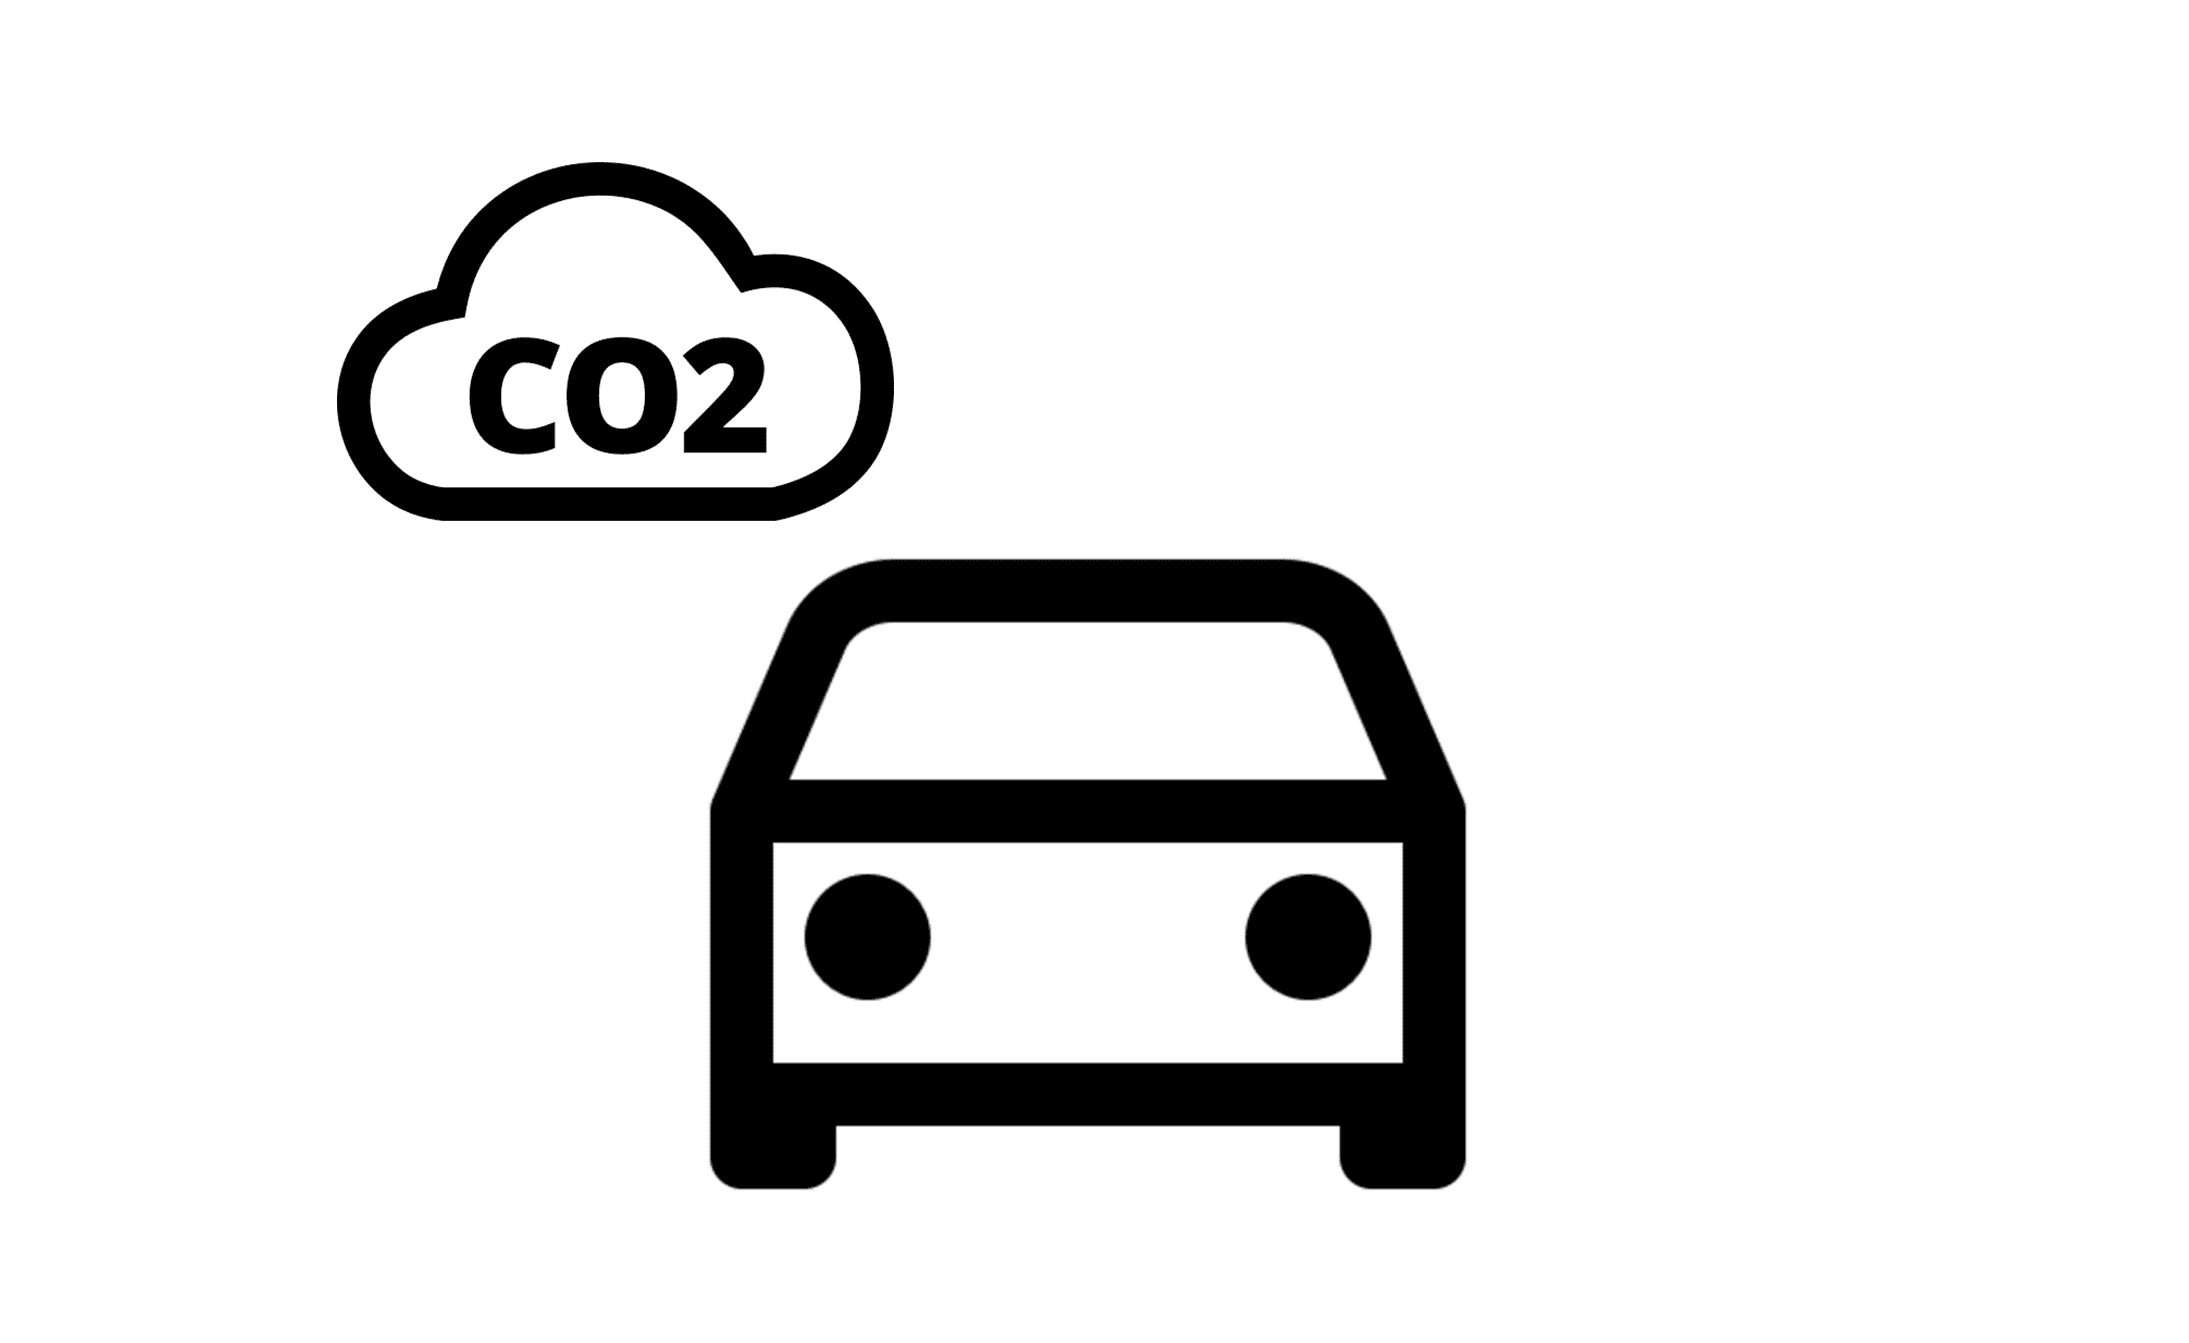 Car and co2 symbol